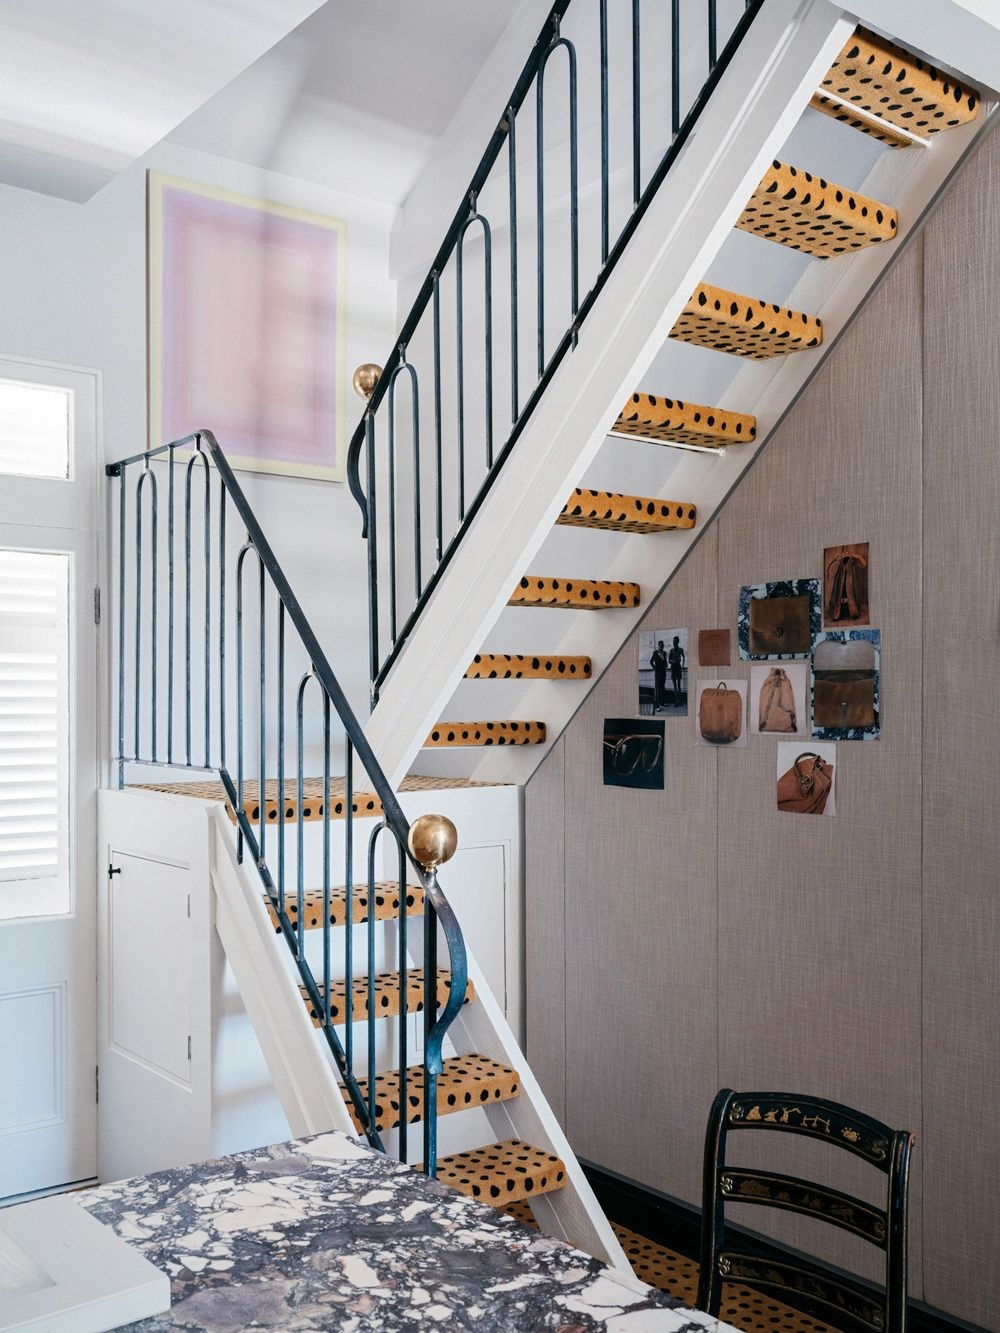 25 Unique Stair Designs Beautiful Stair Ideas For Your House | 9 Foot Spiral Staircase | Stair Railing | Mylen Stairs | Stairway | Stair Parts | Staircase Railings